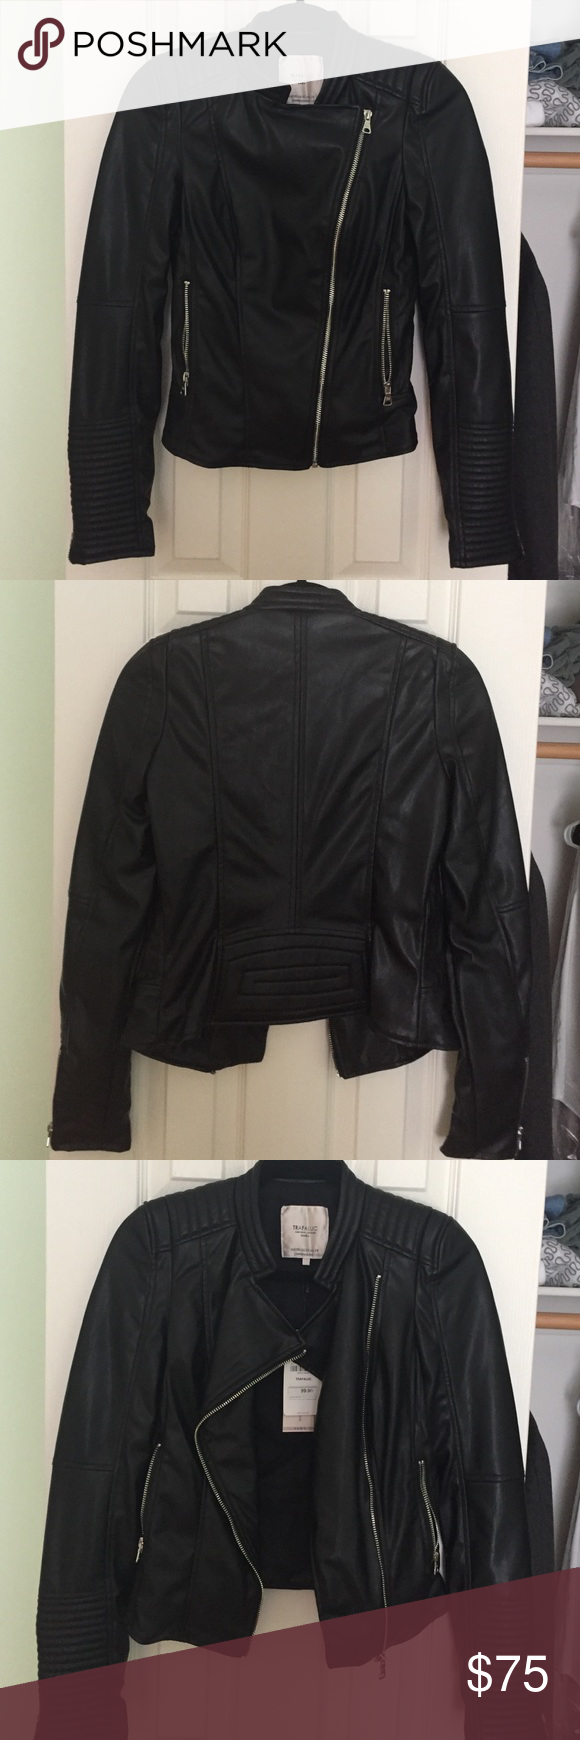 Zara black leather motorcycle jacket XS 2015 Zara black fake leather jacket, super soft and comfortable, sleeves are super long and slimming. Fully lined. 2 fully functional outer zipper pockets and ribbed detailing on shoulders and sleeves. Cut higher in back to accentuate waist and show off the booty. Tags still attached, I never wore this Zara Jackets & Coats Blazers